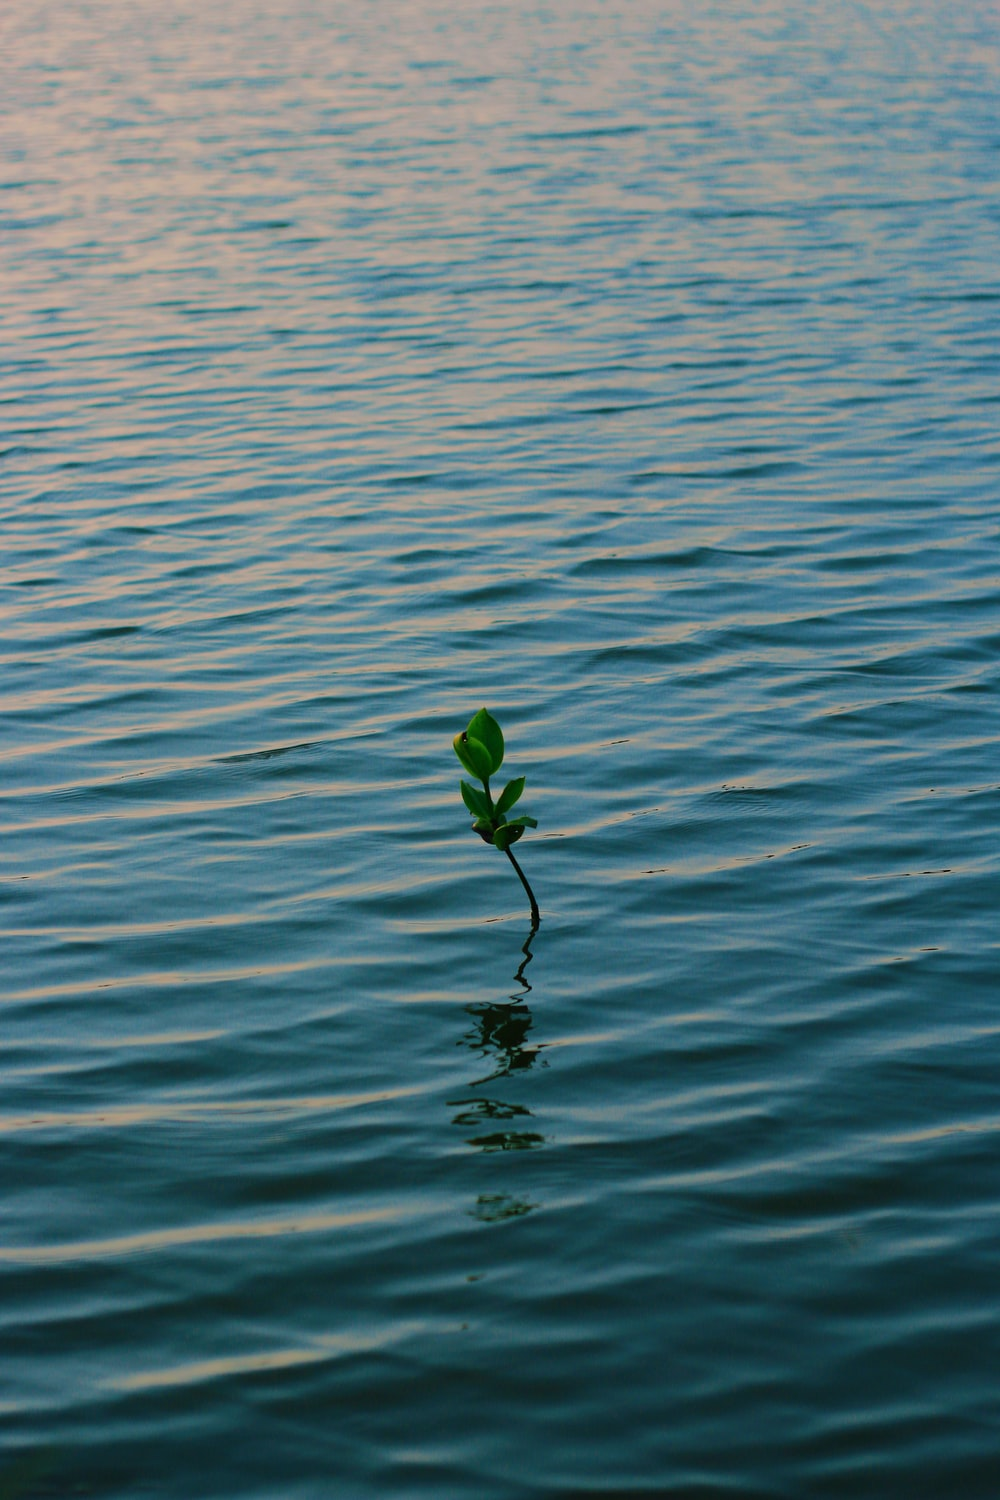 green plant on body of water during daytime